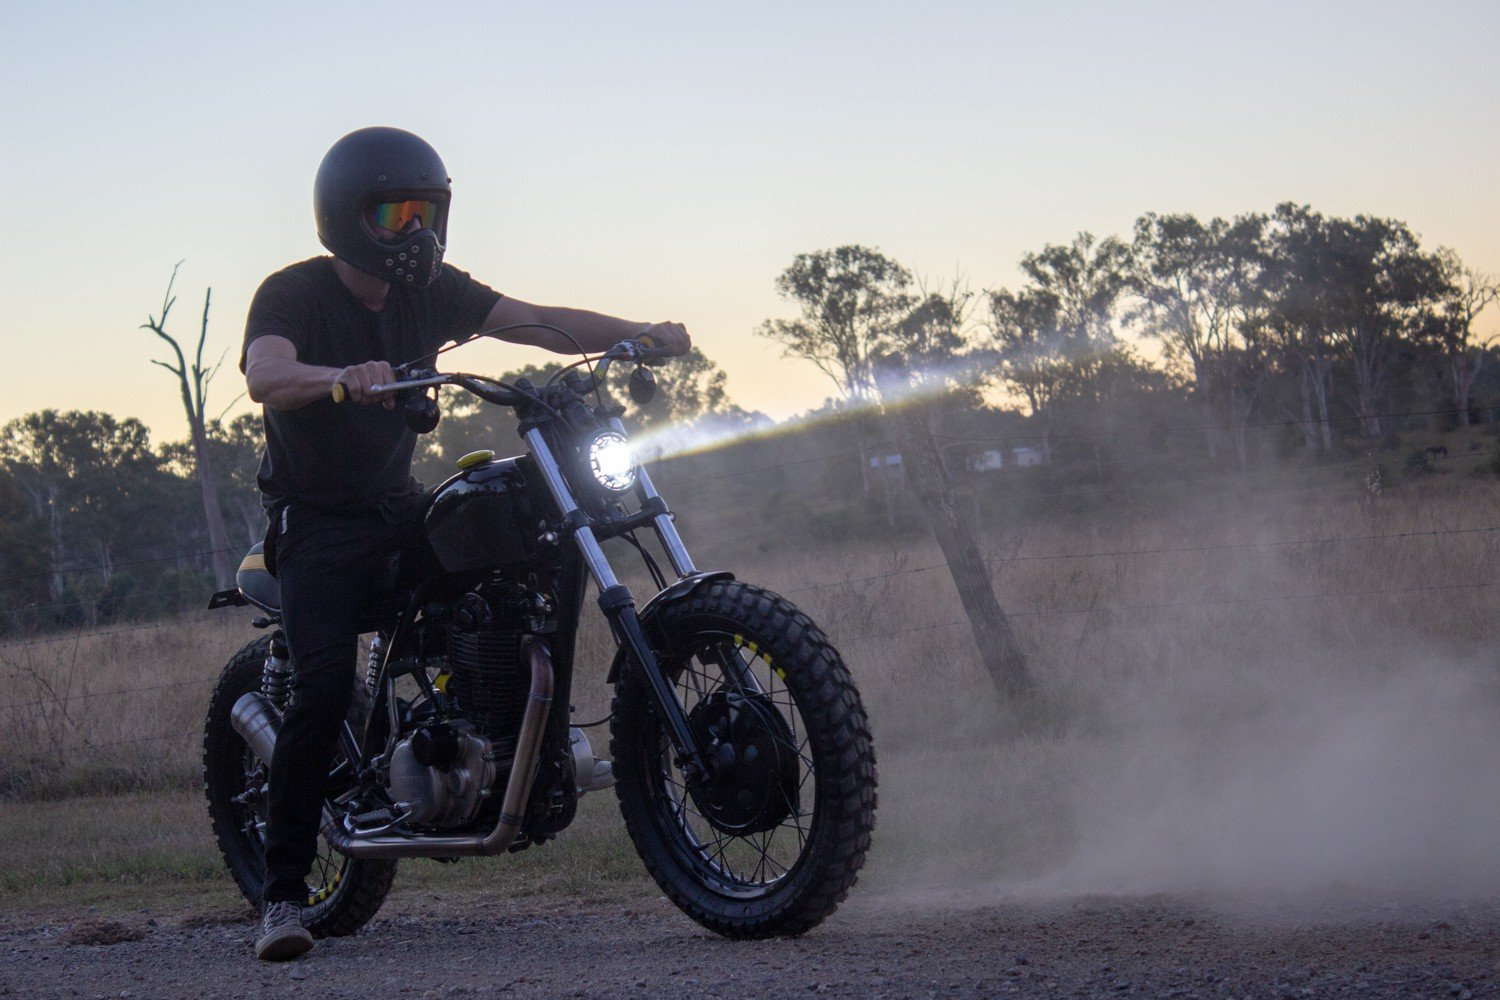 SR400 scrambler custom australia LED headlight